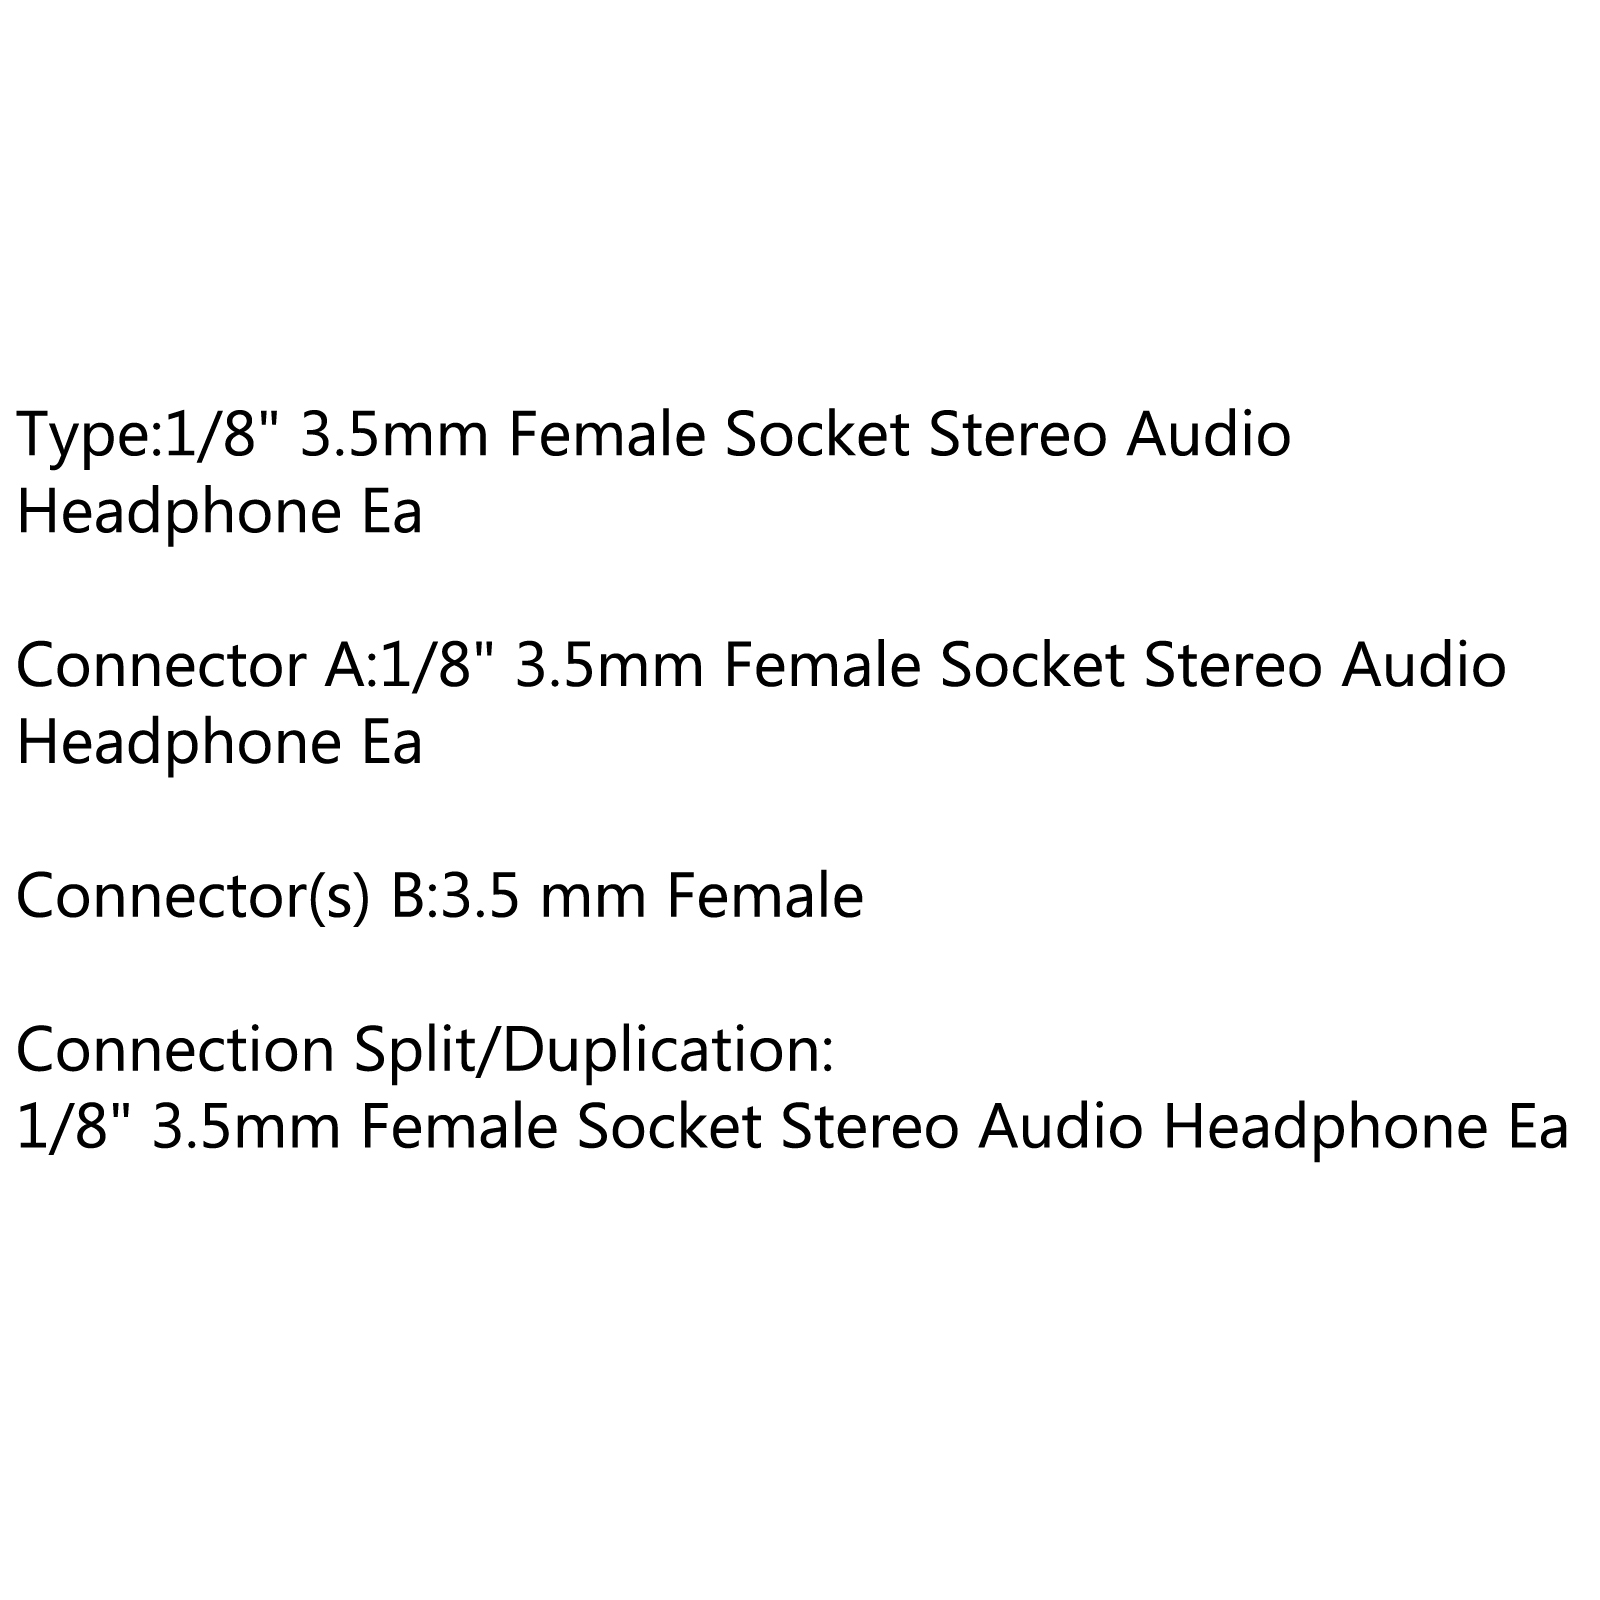 hight resolution of connector a 1 8 3 5mm female socket stereo audio headphone ea connector s b 3 5 mm female connection split duplication 1 8 3 5mm